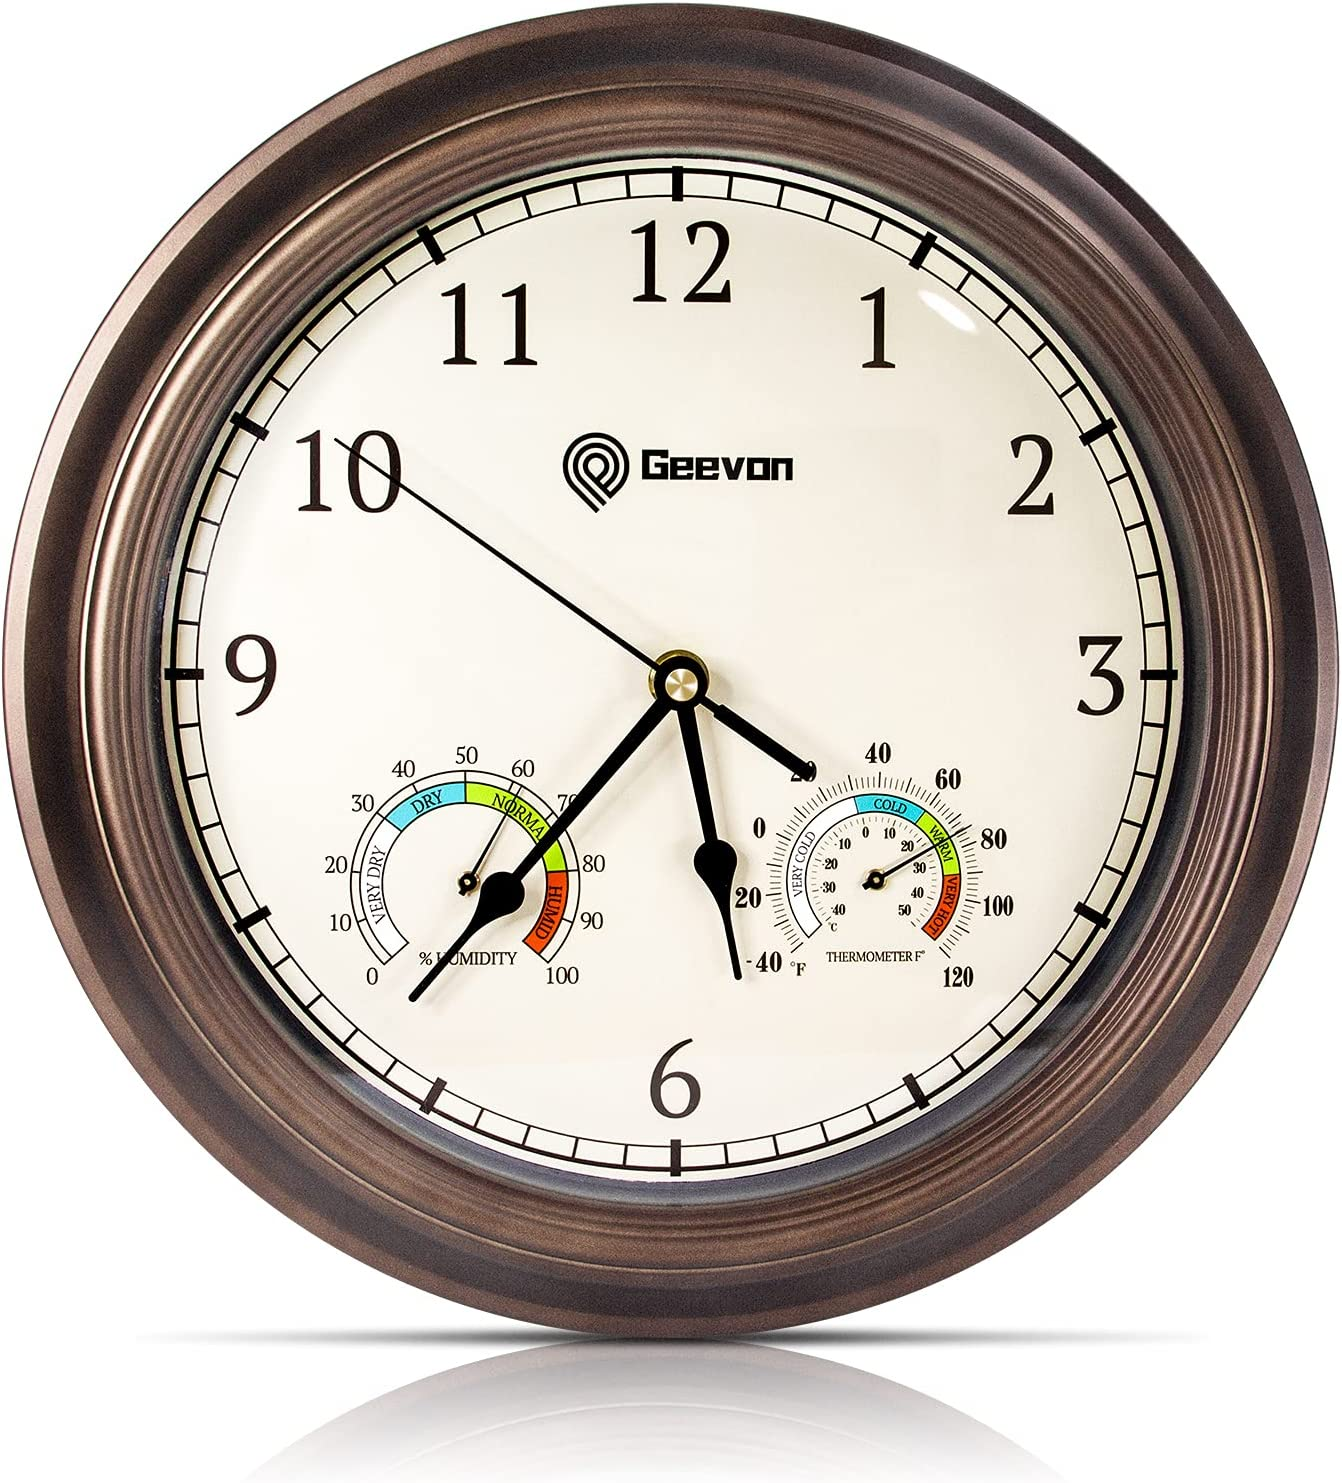 GEEVON Wall Clock Non Ticking 12 Inch with Thermometer and Hygrometer,Battery Operated Quartz Decorative Large Wall Clocks for Home,Living Room,Office,Classroom,Kitchen,Bedroom Wall Decor